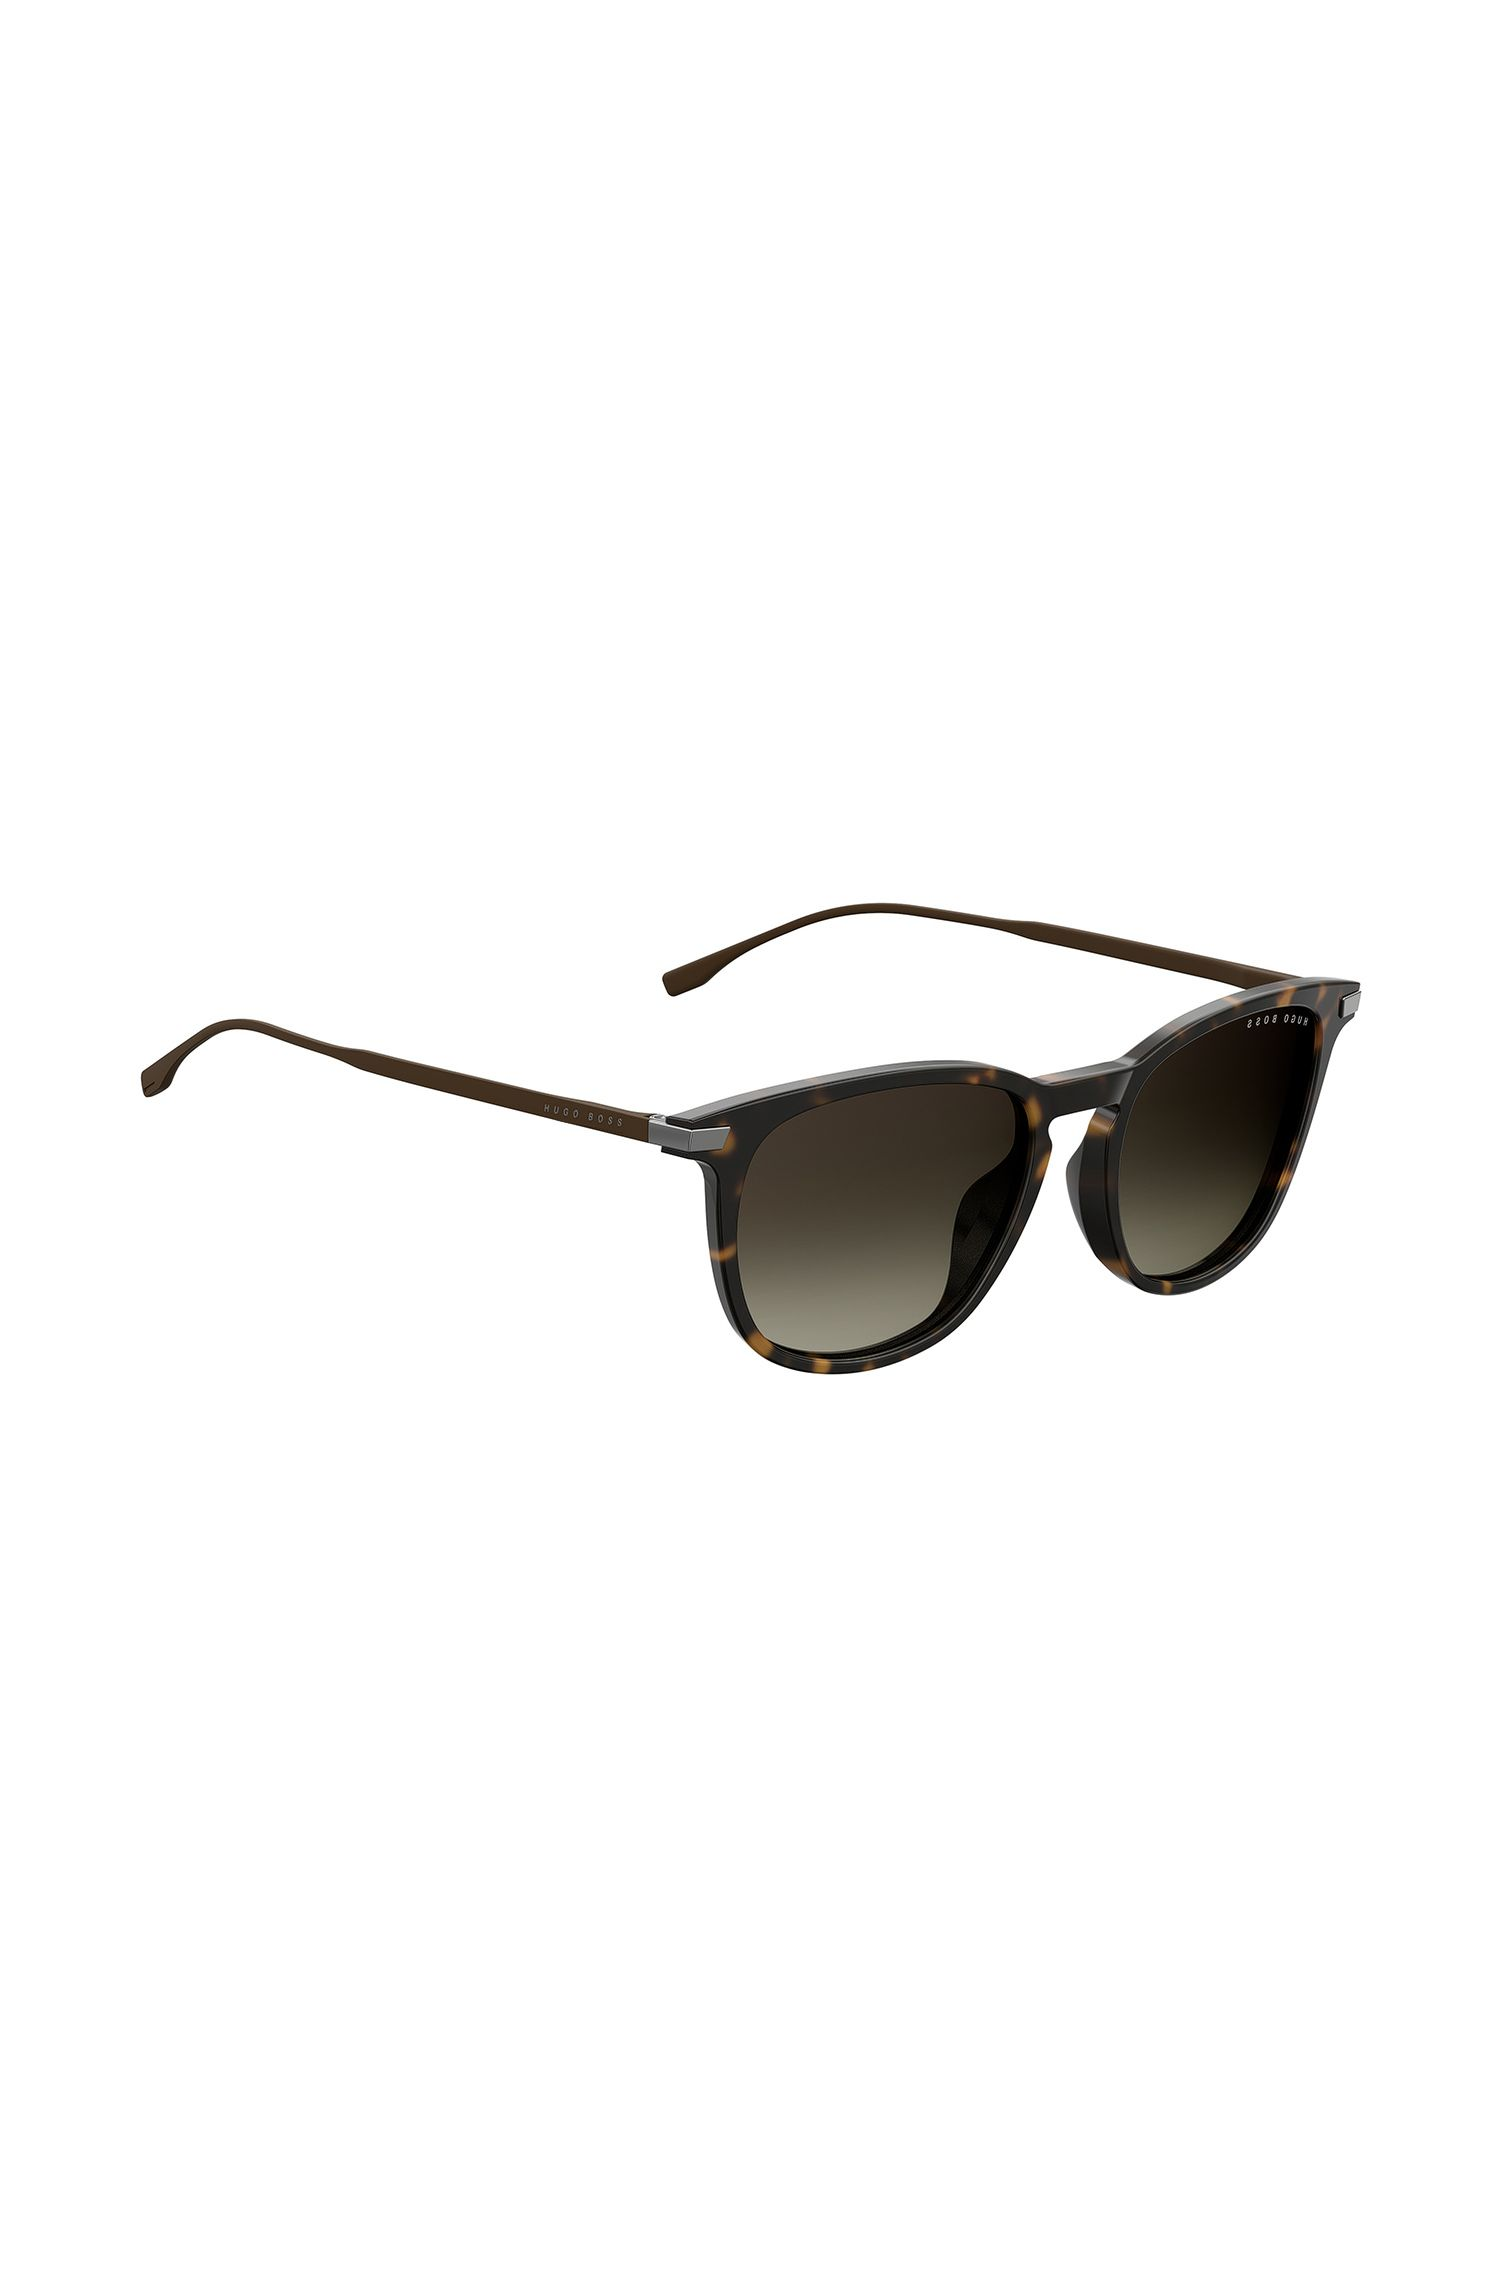 Havana-pattern sunglasses with metallic temples, Assorted-Pre-Pack